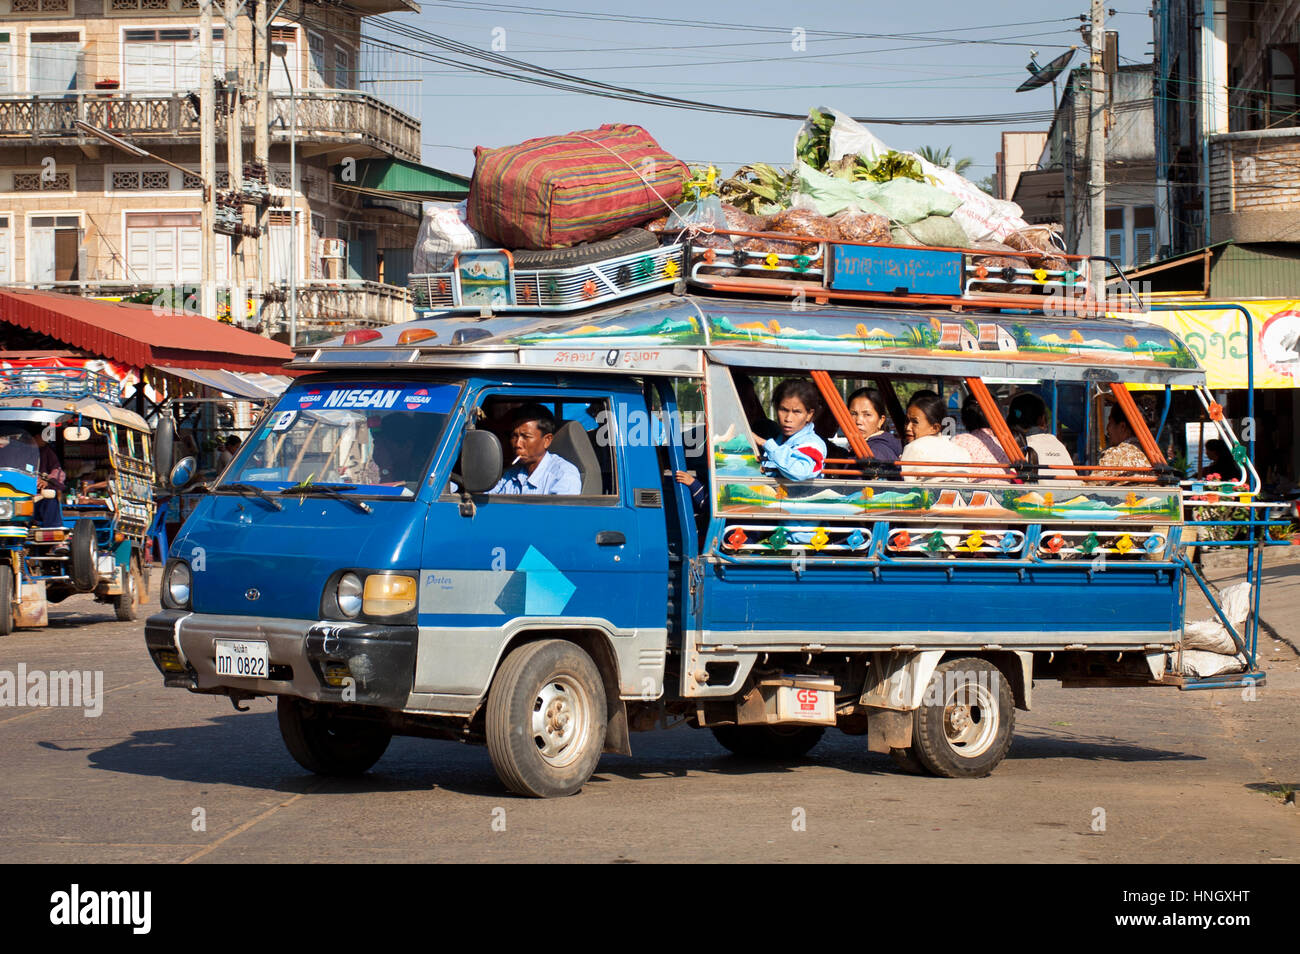 Pakse, Laos - January, 13 2005: A packed Songthaew minibus drives through the town of Pak Se in Laos. A Songthaew - Stock Image